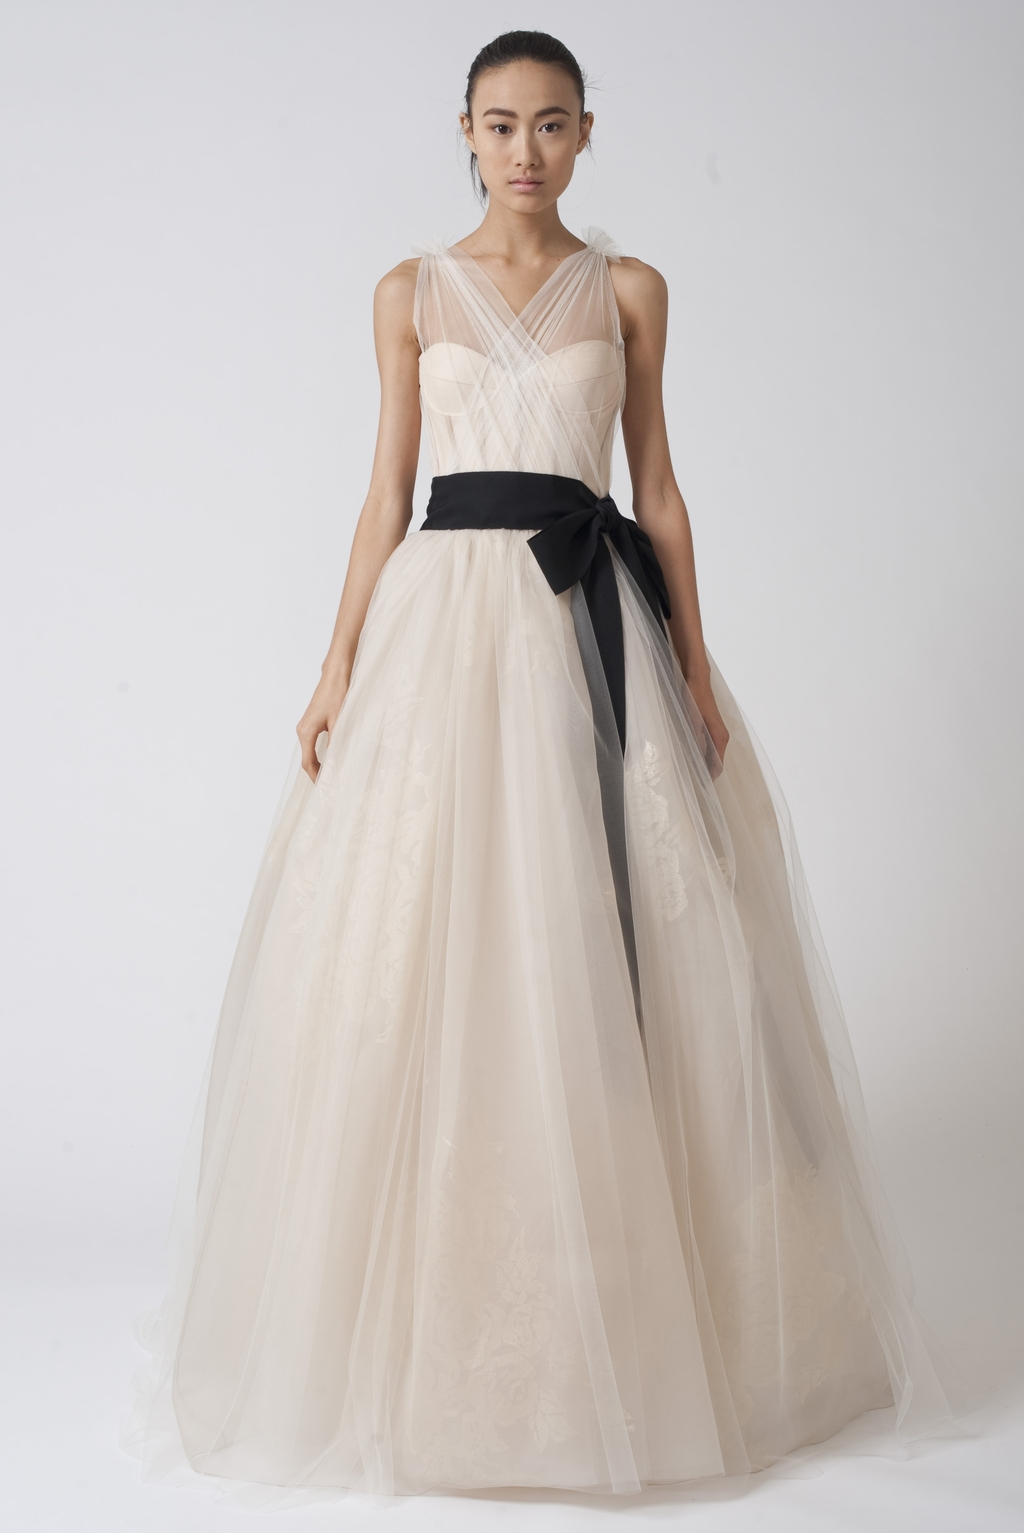 Vera-wang-wedding-dresses-fall-2010-2.full